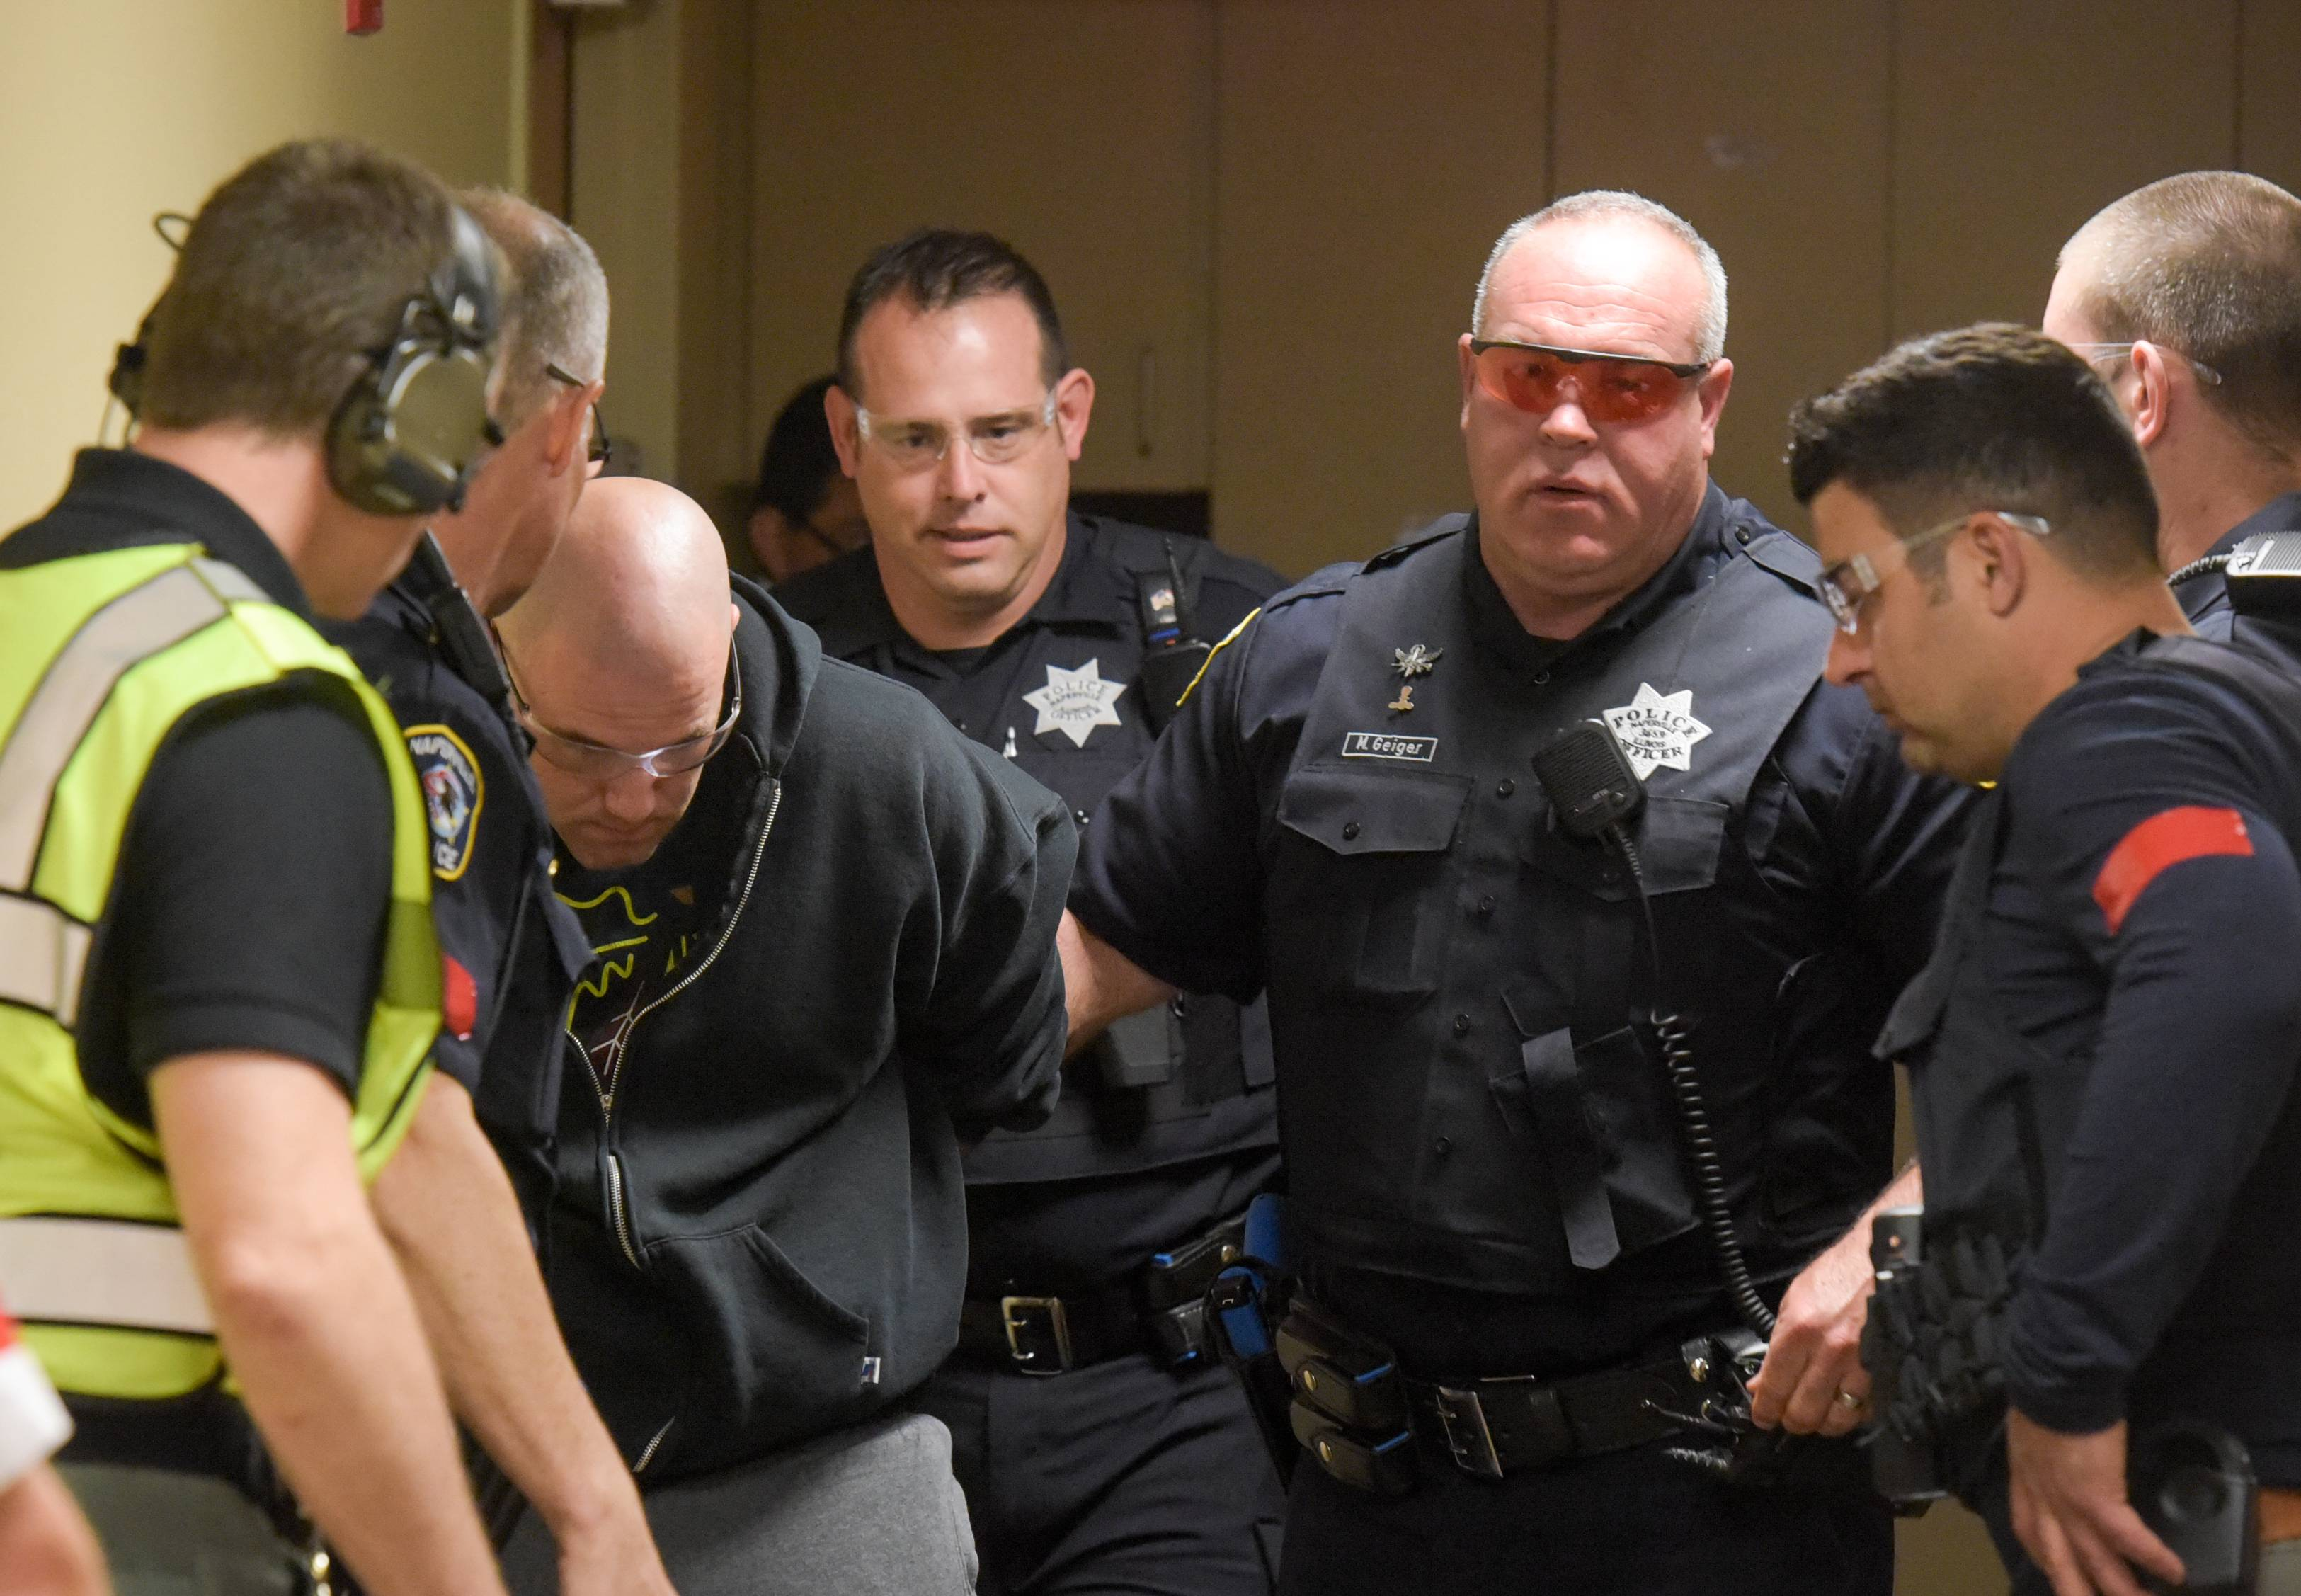 Naperville police conducting an active shooter drill take the suspect into custody Thursday morning at Edward Hospital.